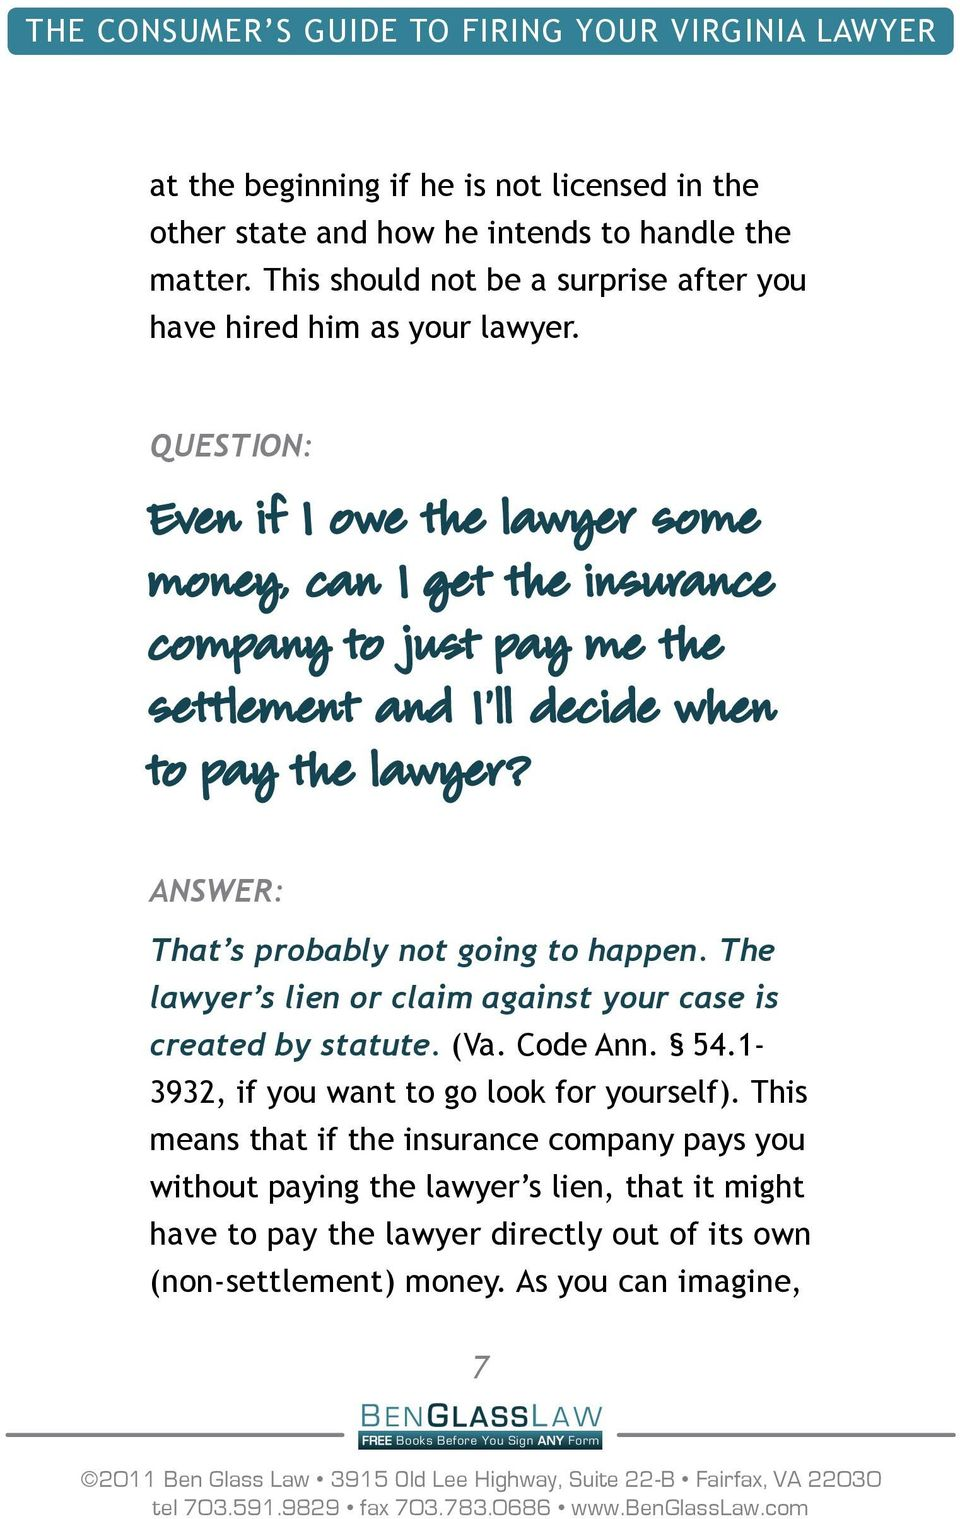 Question: Even if I owe the lawyer some money, can I get the insurance company to just pay me the settlement and I ll decide when to pay the lawyer?